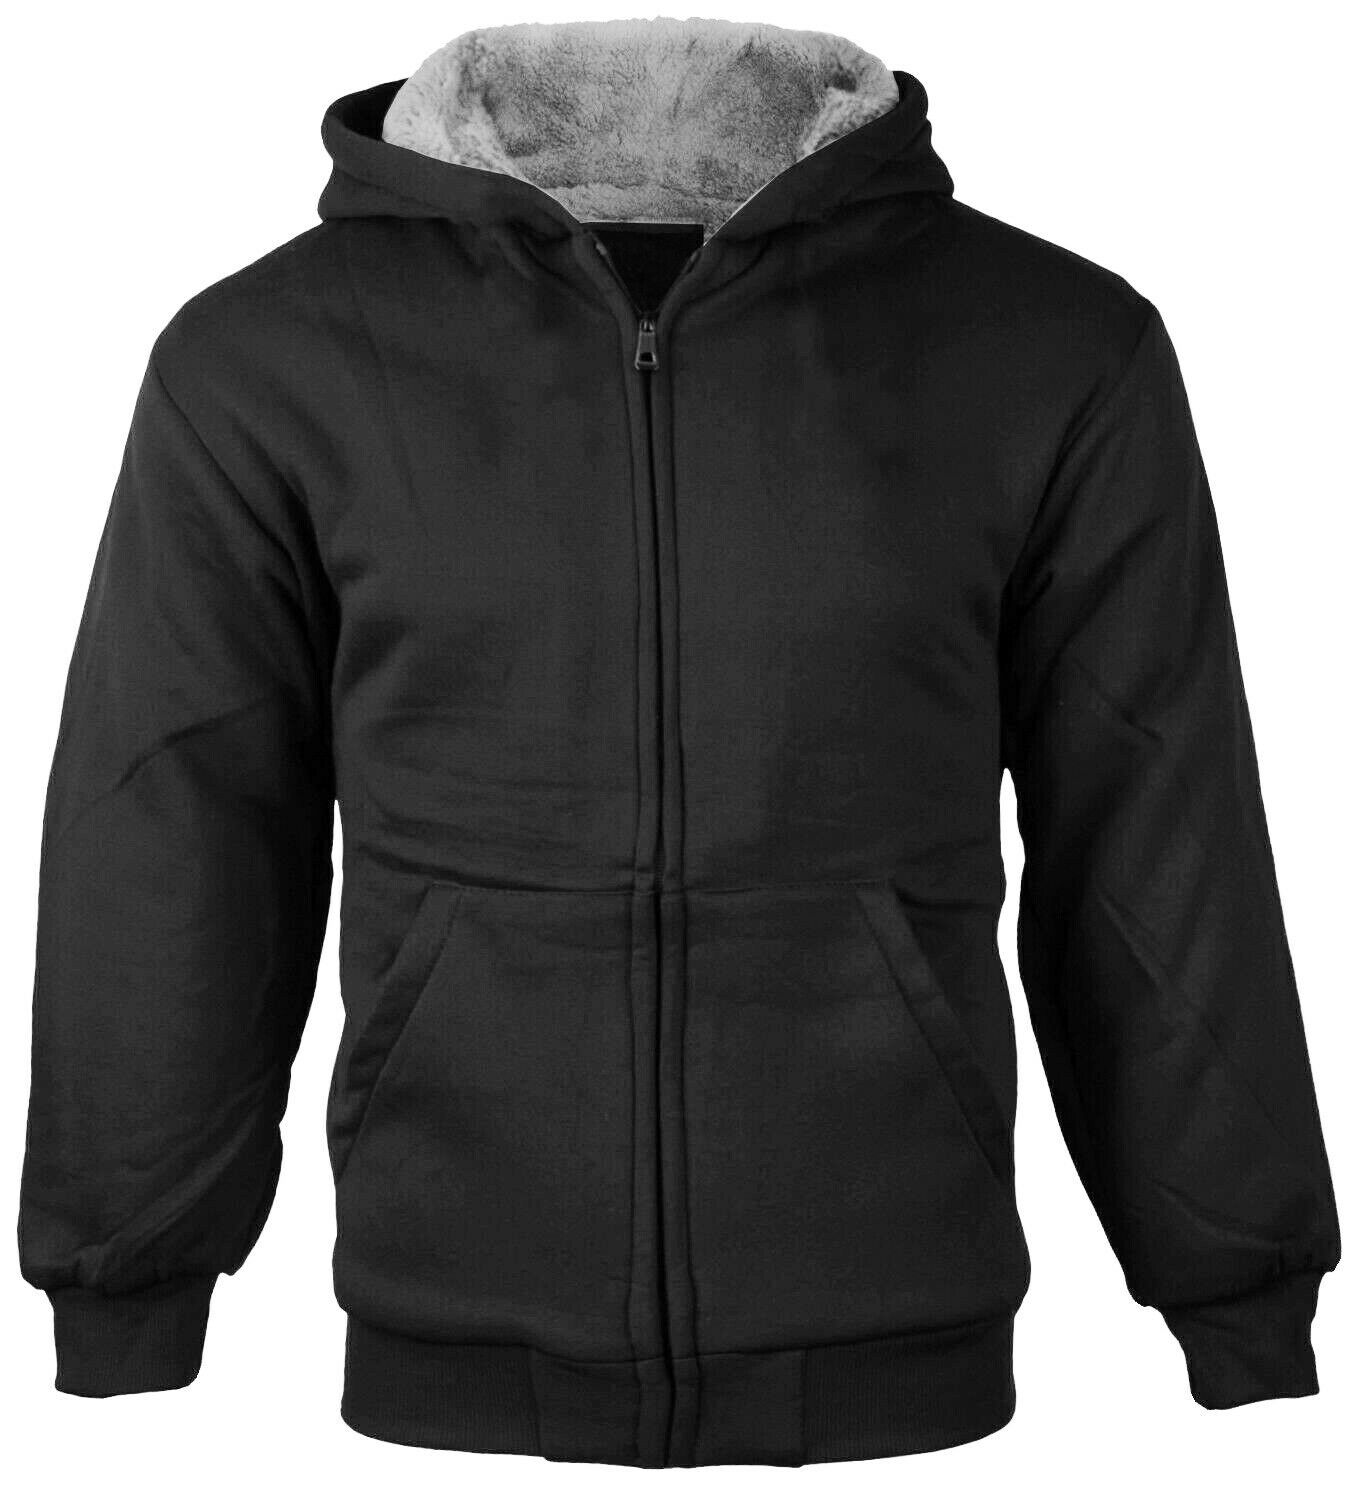 Boys Kids Toddler Sherpa Fleece Hoodie Black Sweater Jacket w/ Defect - M